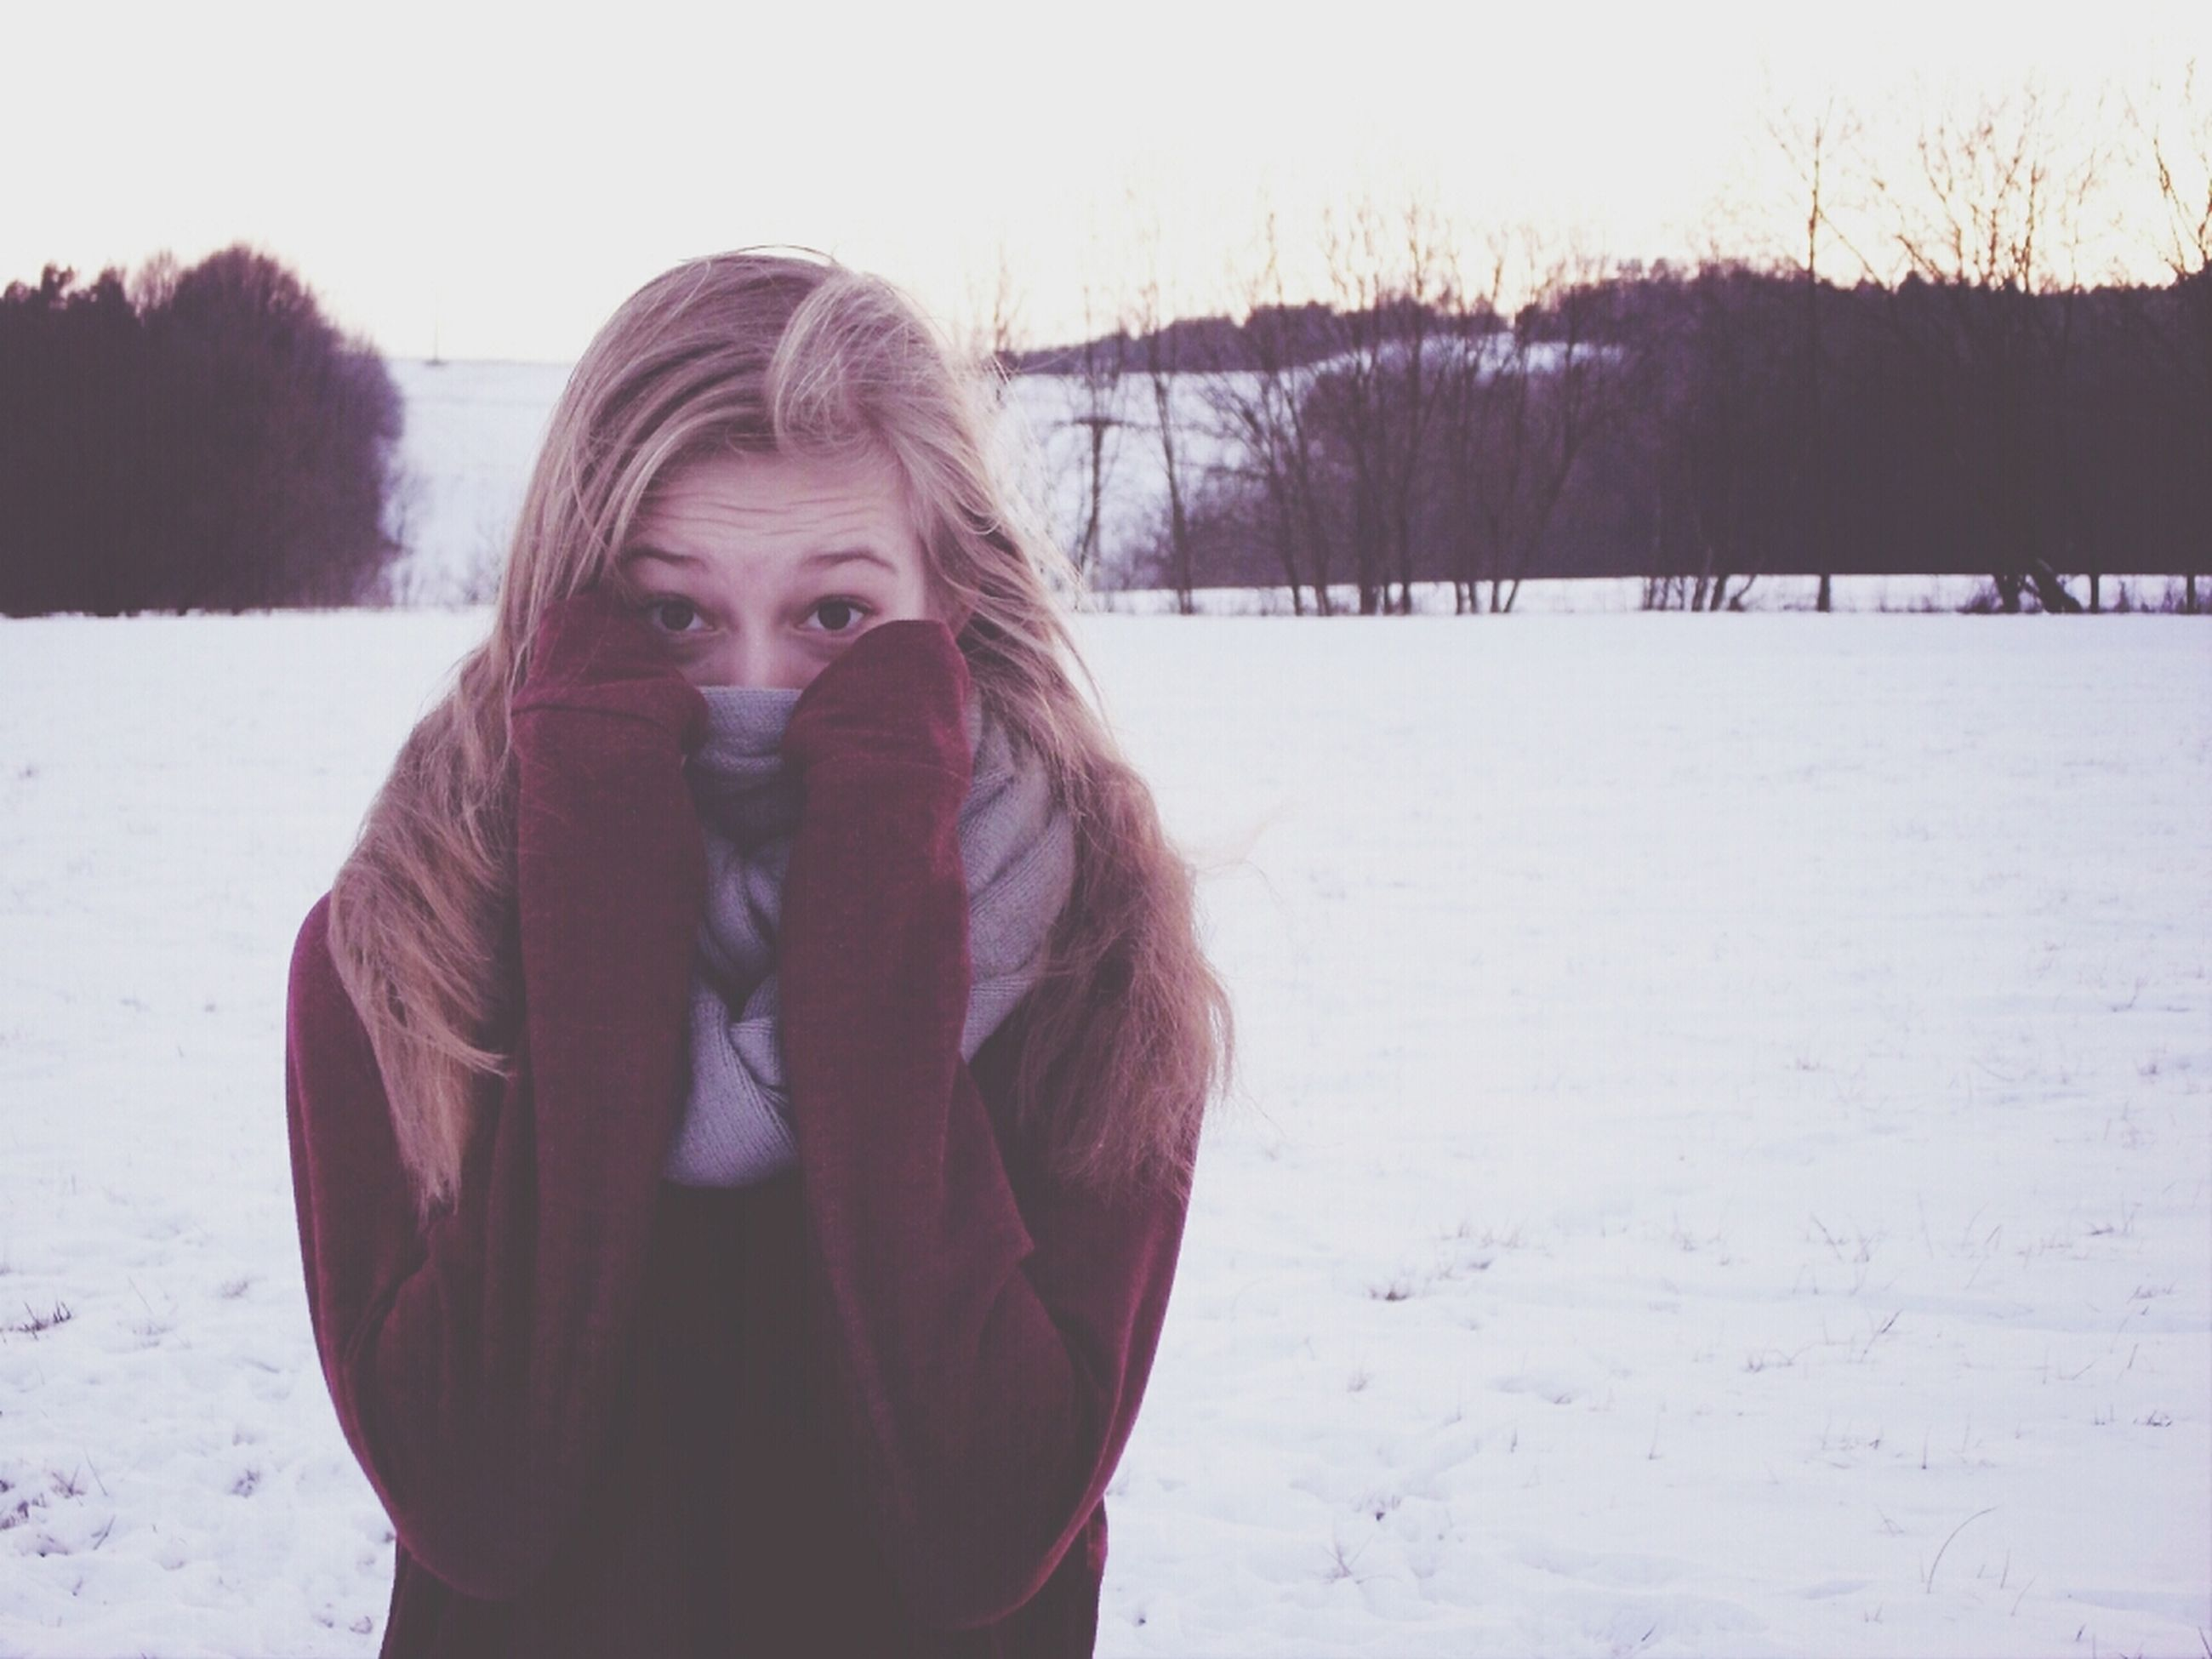 winter, snow, cold temperature, season, lifestyles, person, warm clothing, leisure activity, field, portrait, weather, looking at camera, standing, front view, covering, young adult, landscape, nature